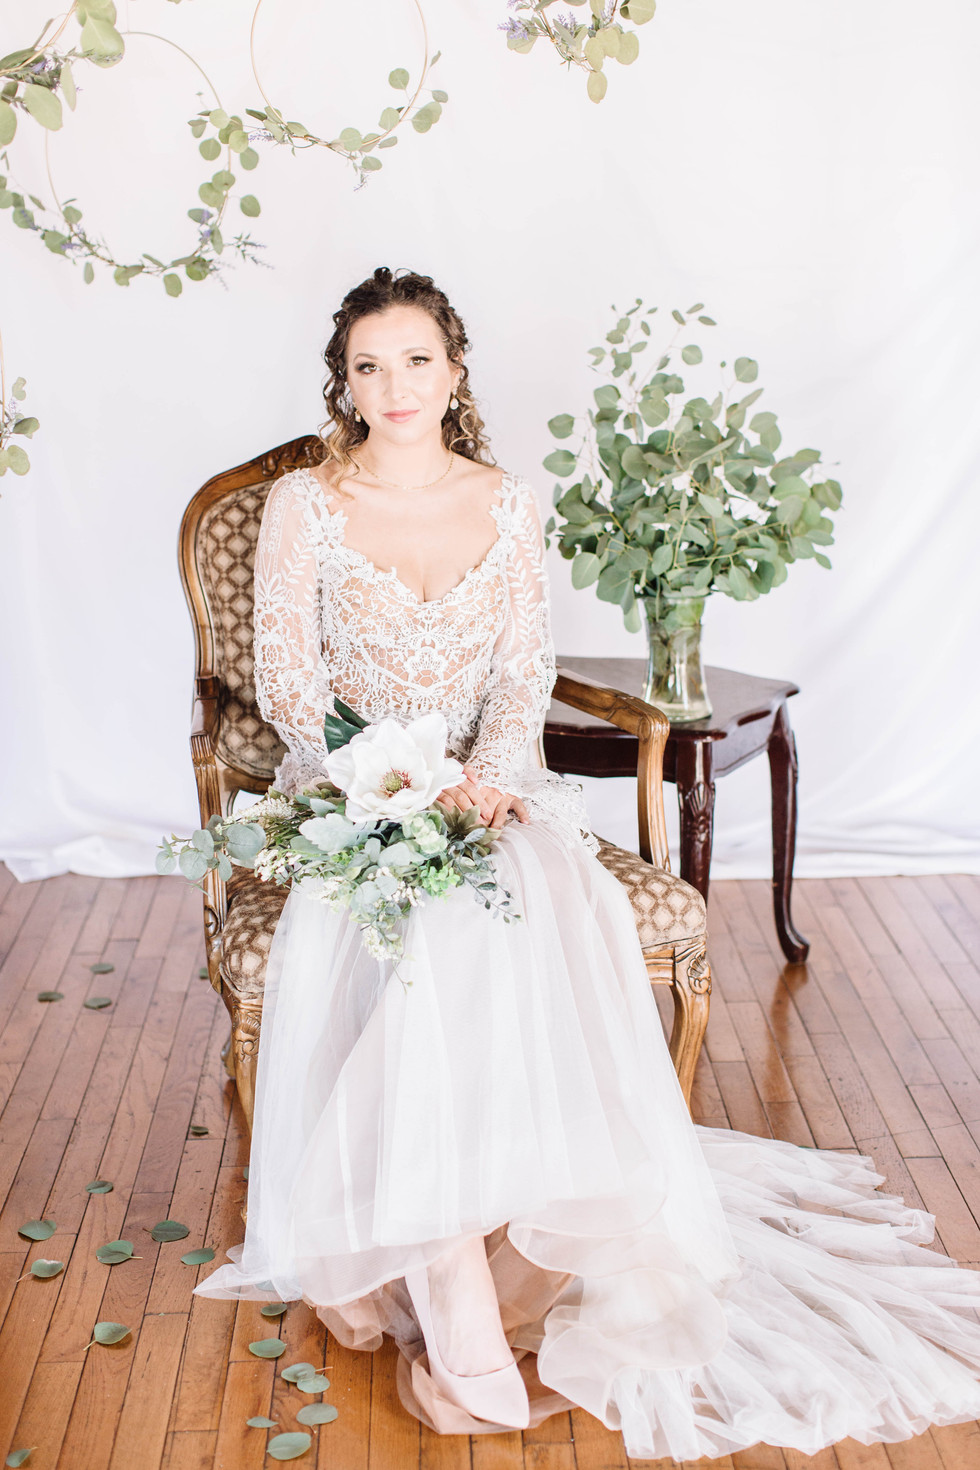 Styled Bridal Shoot - Classic Southern Bride - Morgan Comer